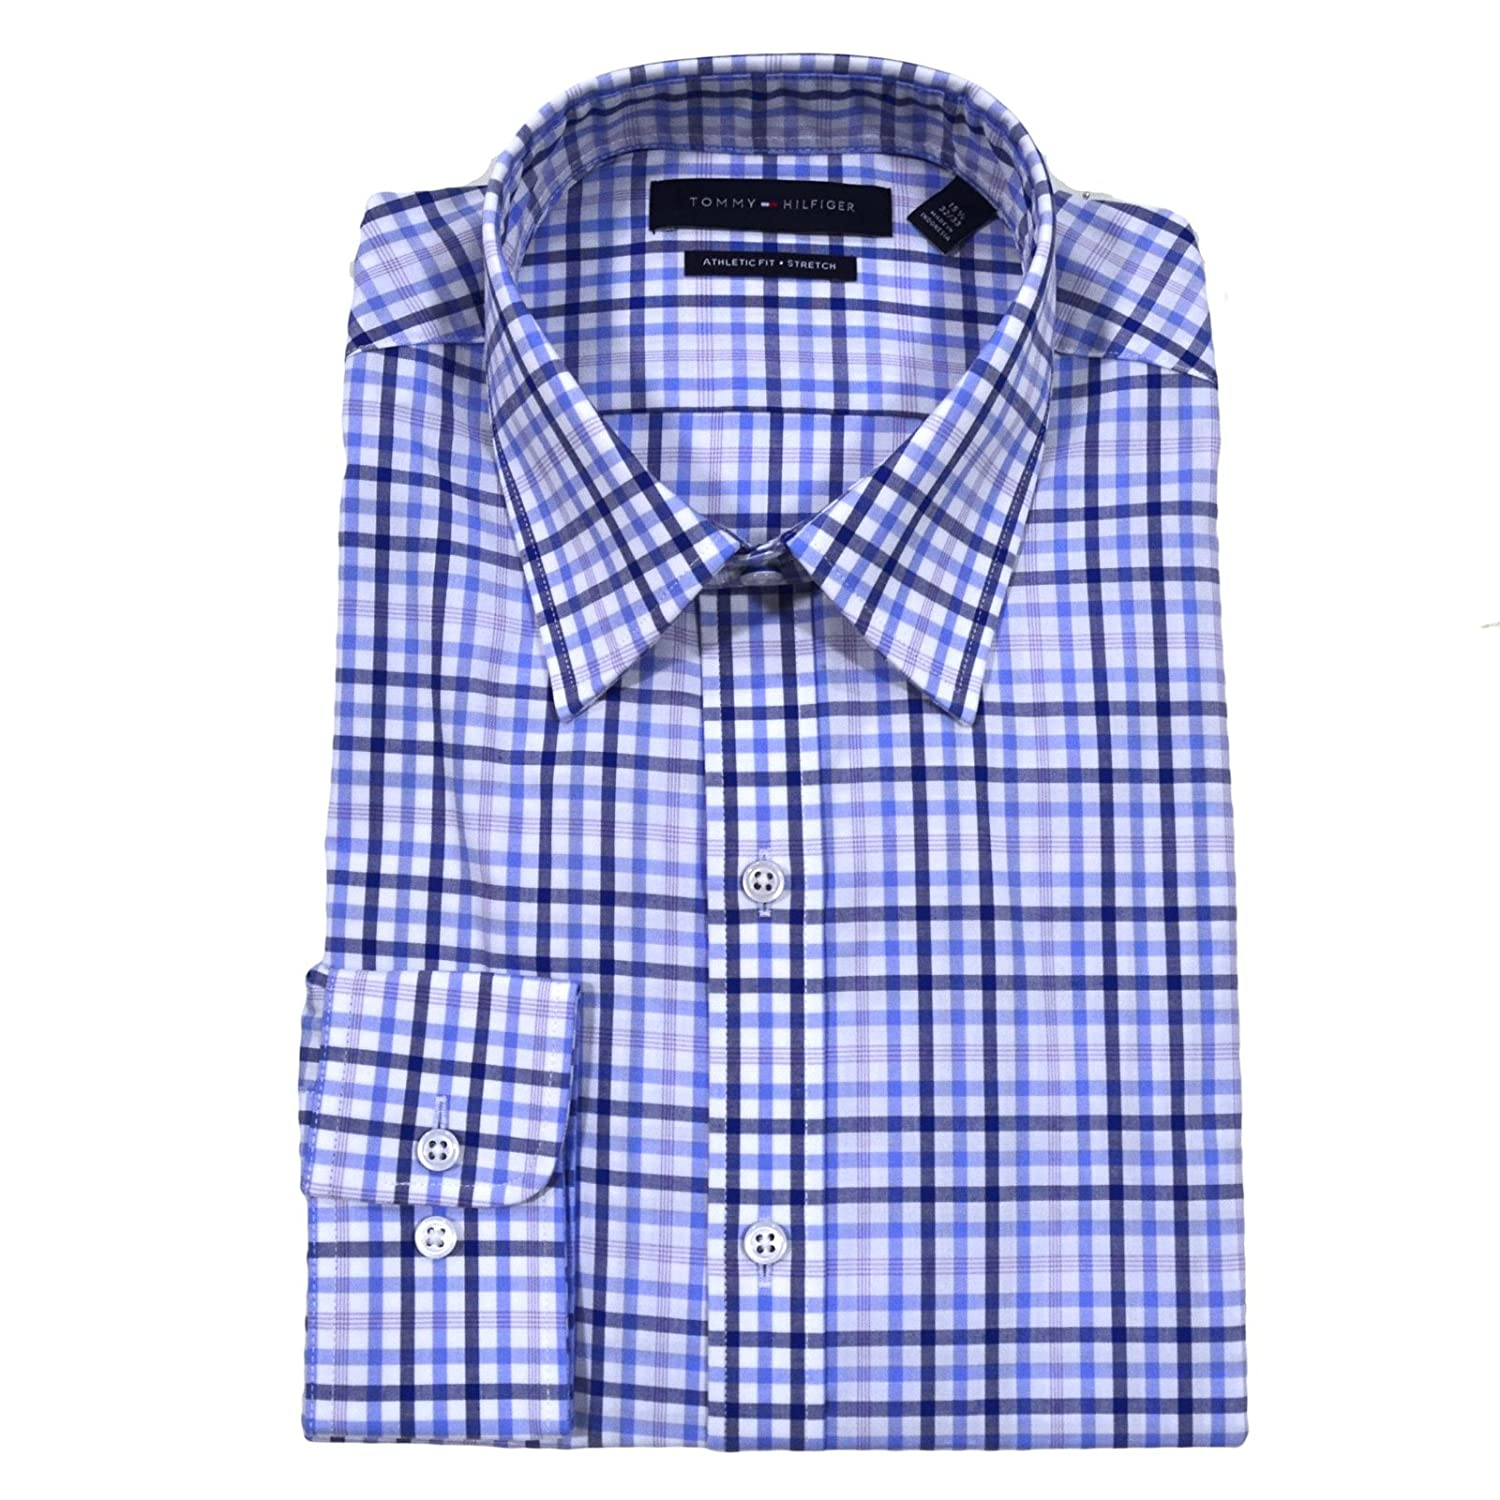 Tommy Hilfiger Athletic Fit Dress Shirt 15 3233 Blue Cloud At